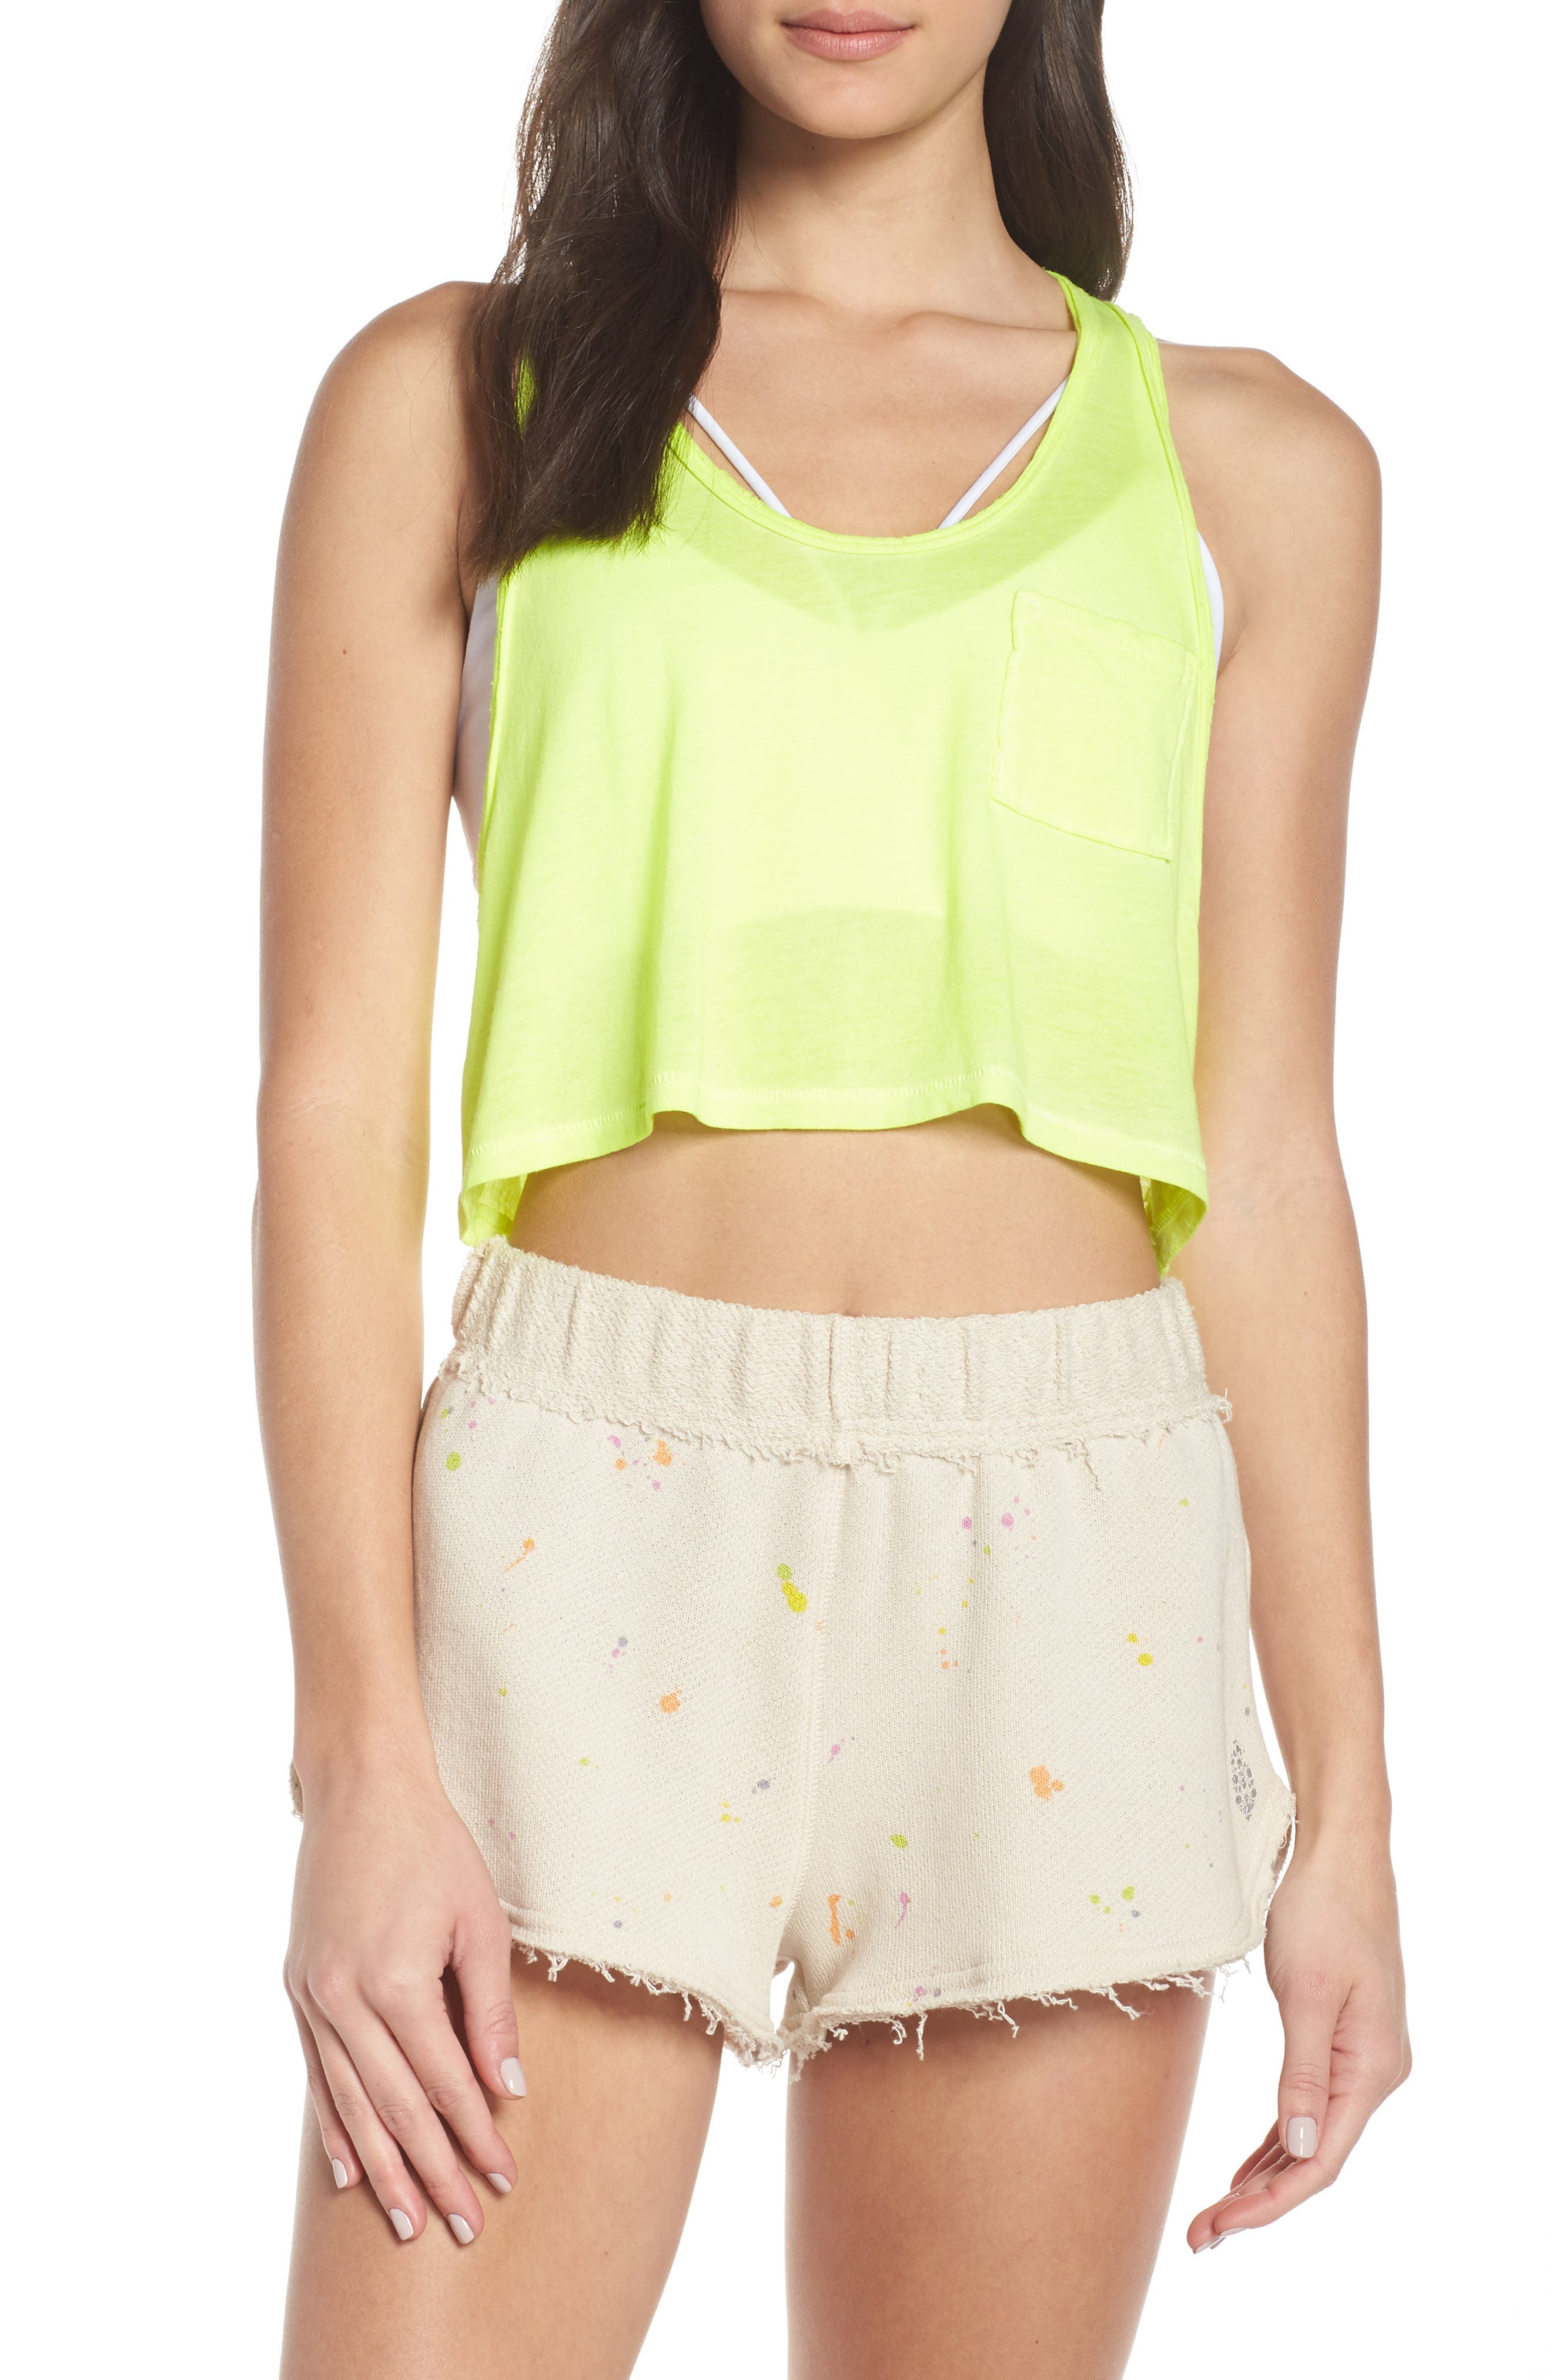 FREE PEOPLE MOVEMENT Sunny Days Cropped Tank Top, Main, color, LIME